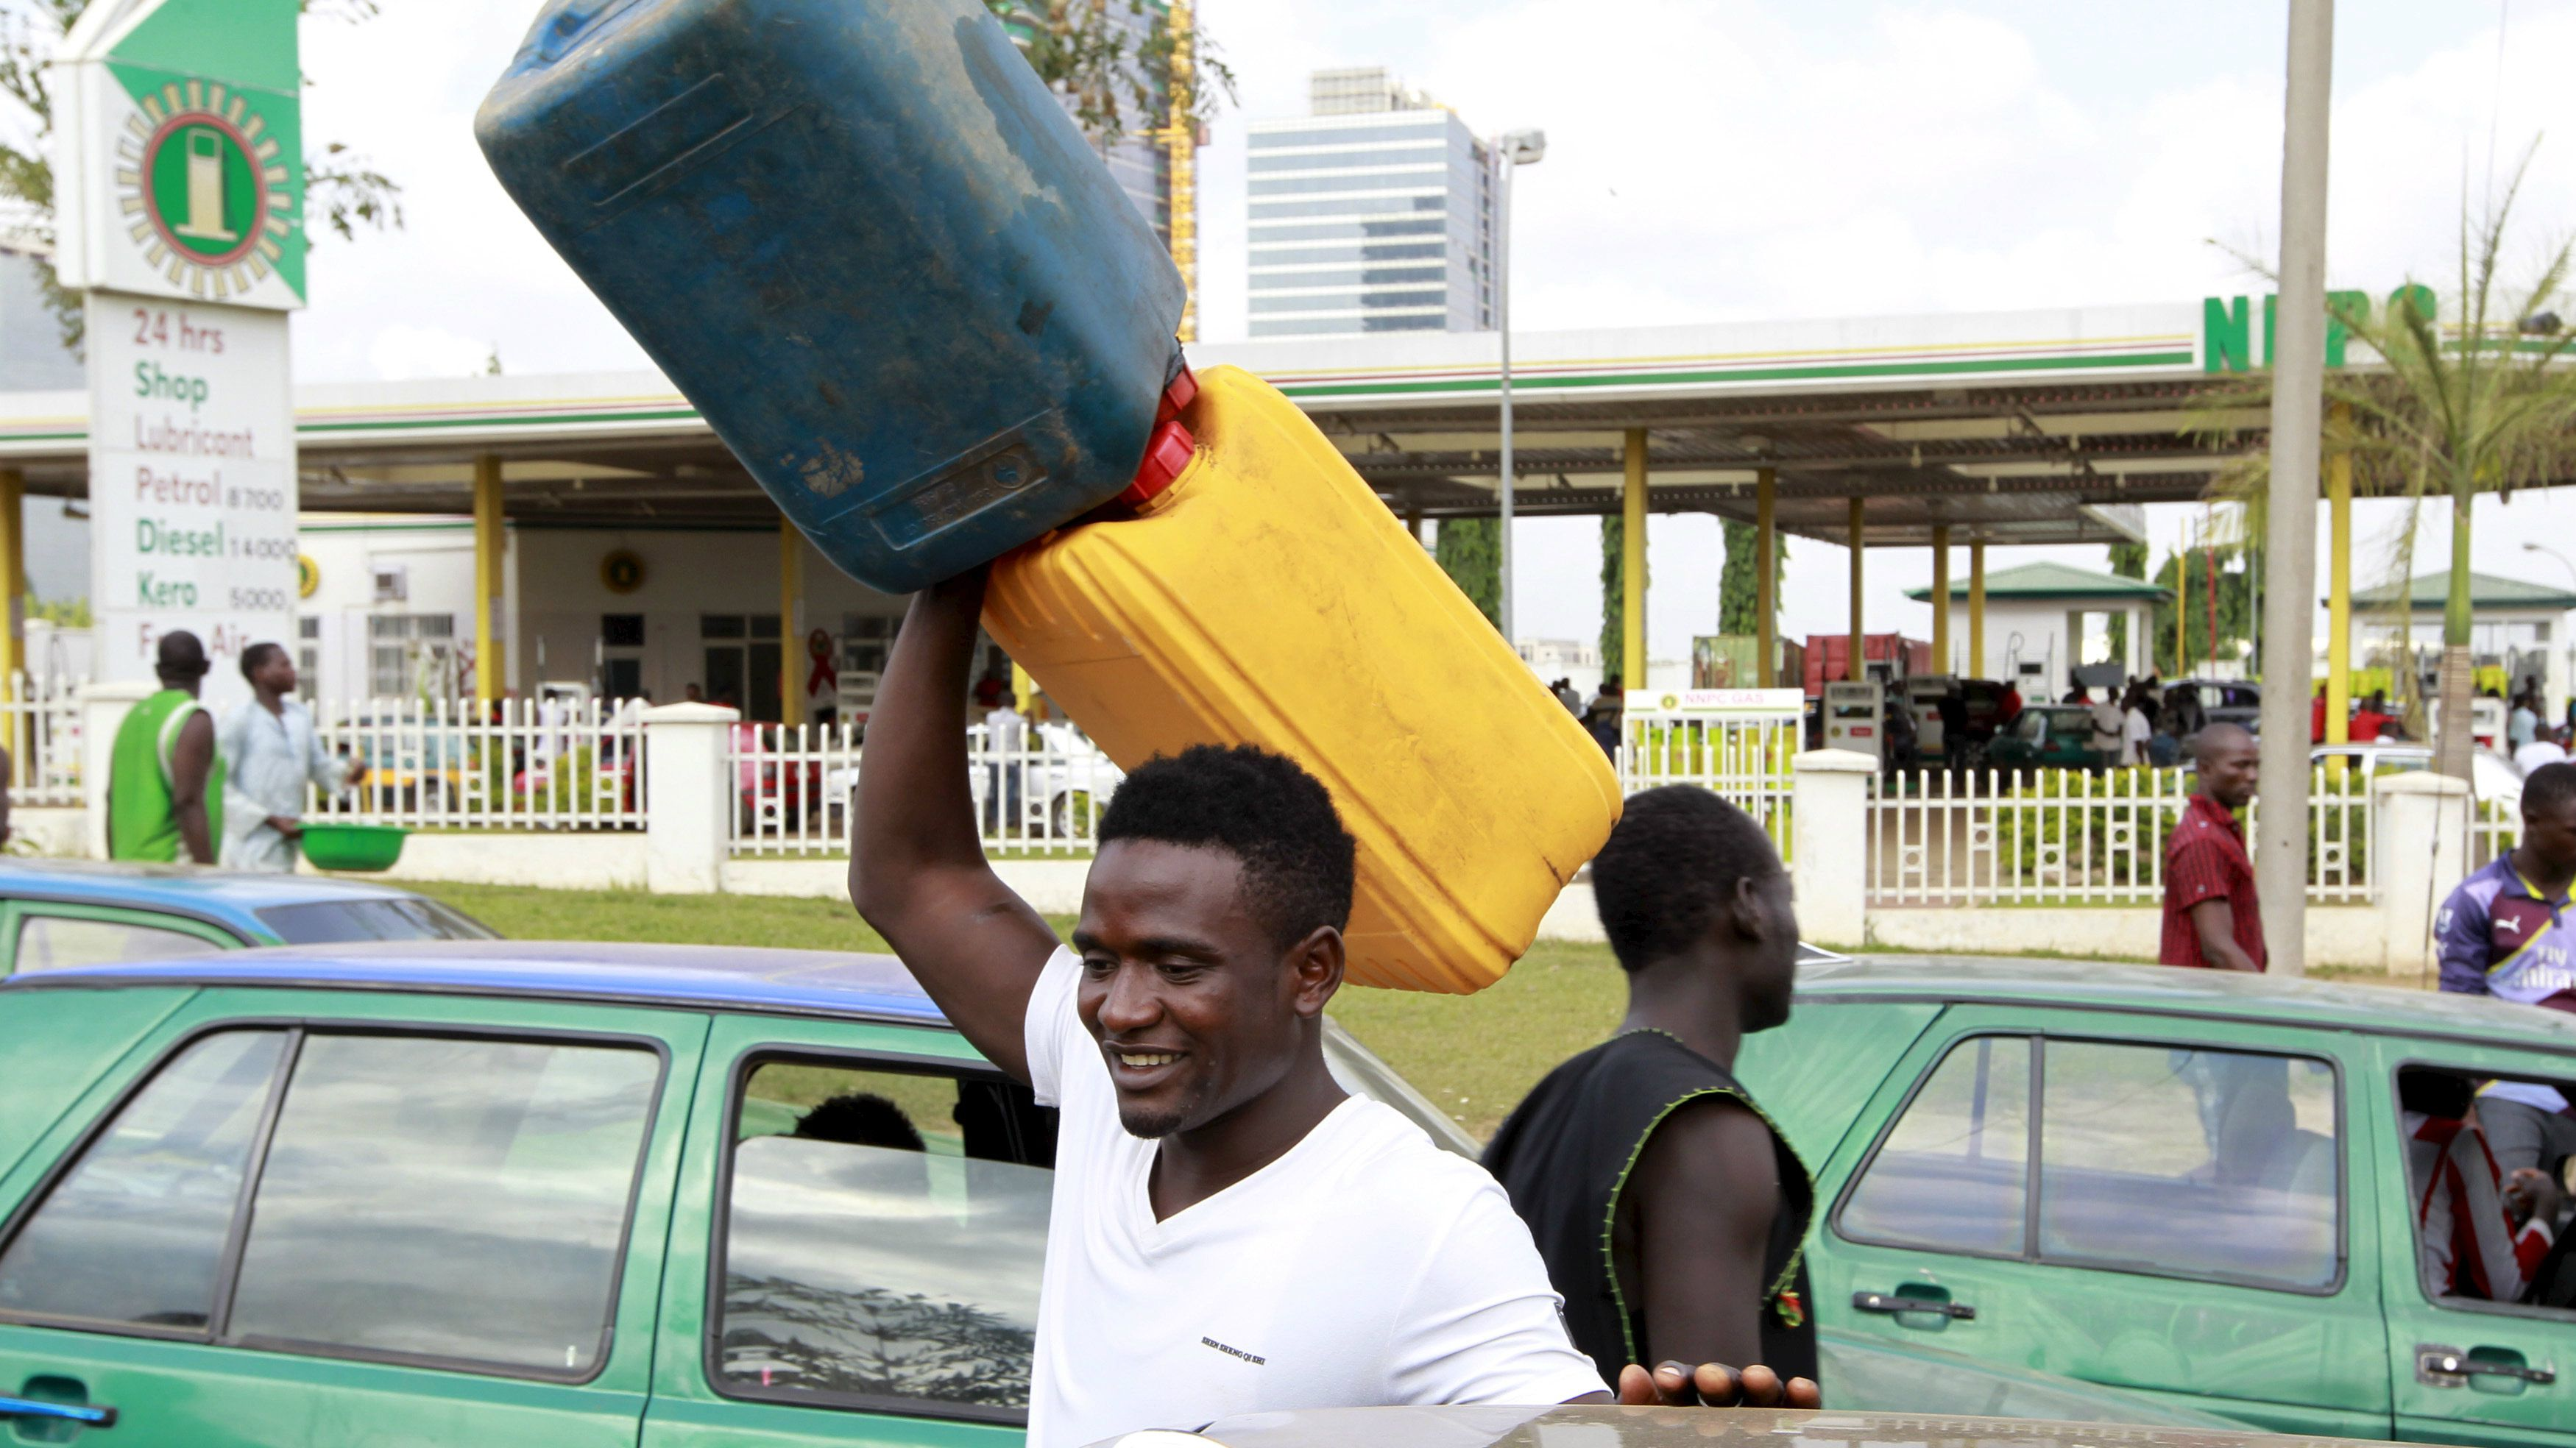 A man carries empty petrol containers outside the NNPC mega petrol station in Abuja, Nigeria May 25, 2015. REUTERS/Afolabi Sotunde